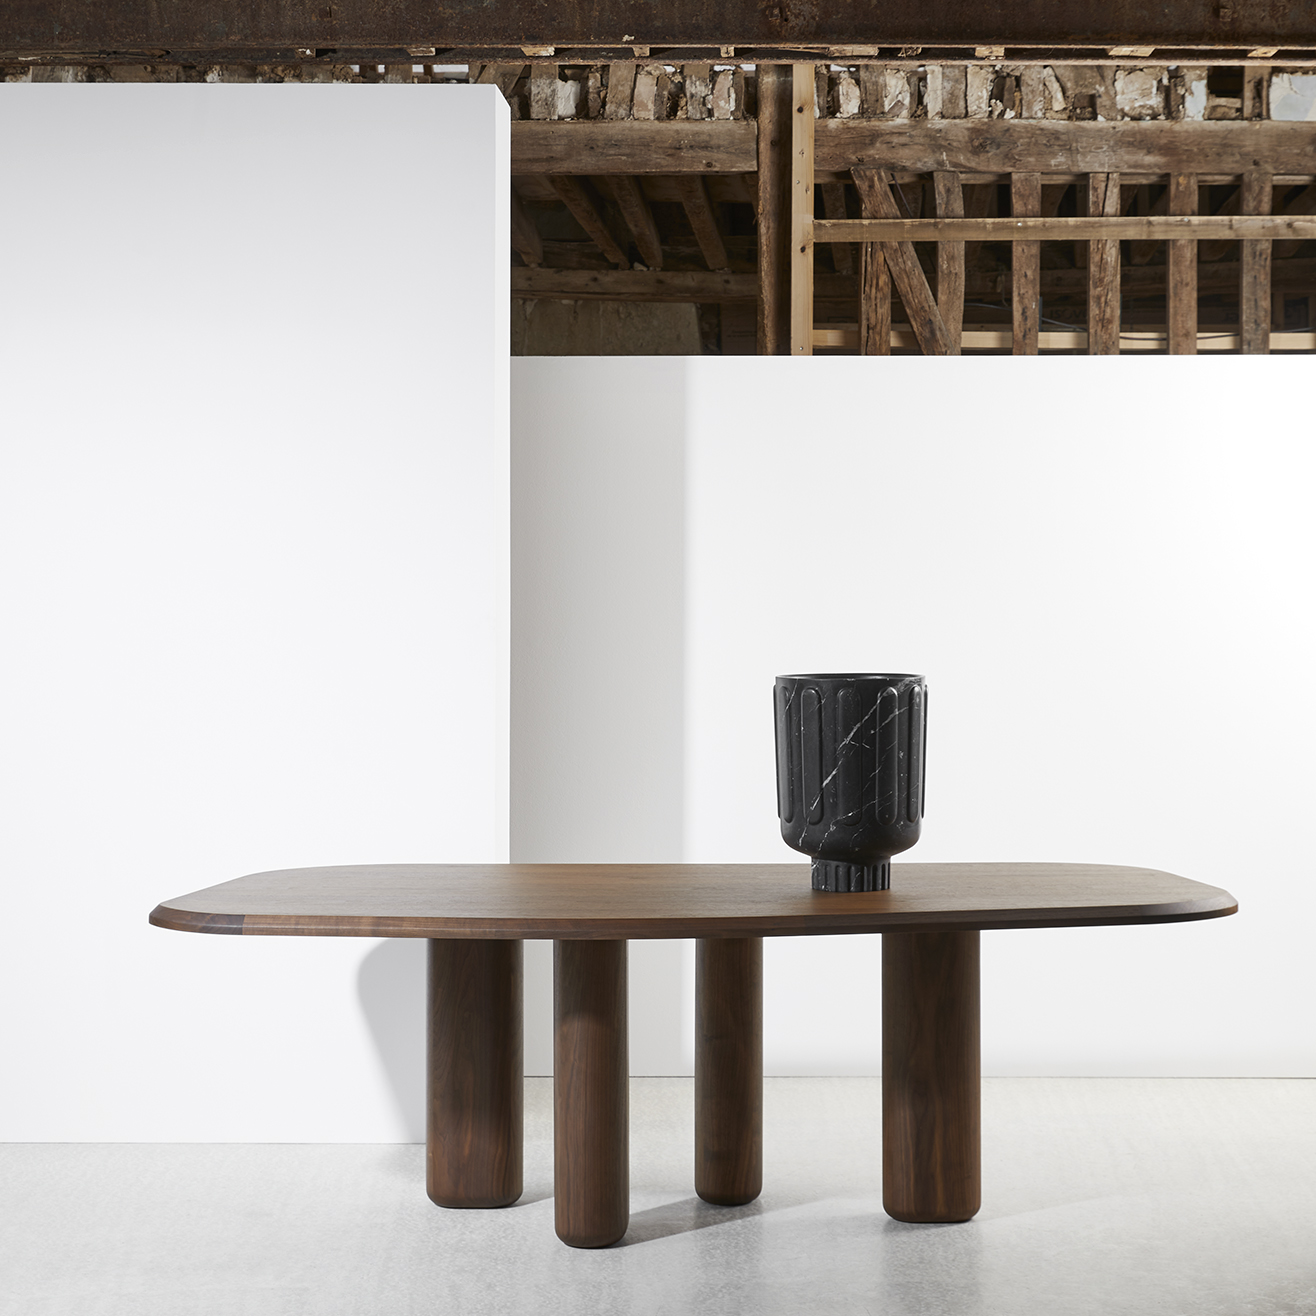 ROUGH-DINING-TABLE-SAMUEL-ACCOCEBERRY-COLLECTION-PARTICULIERE